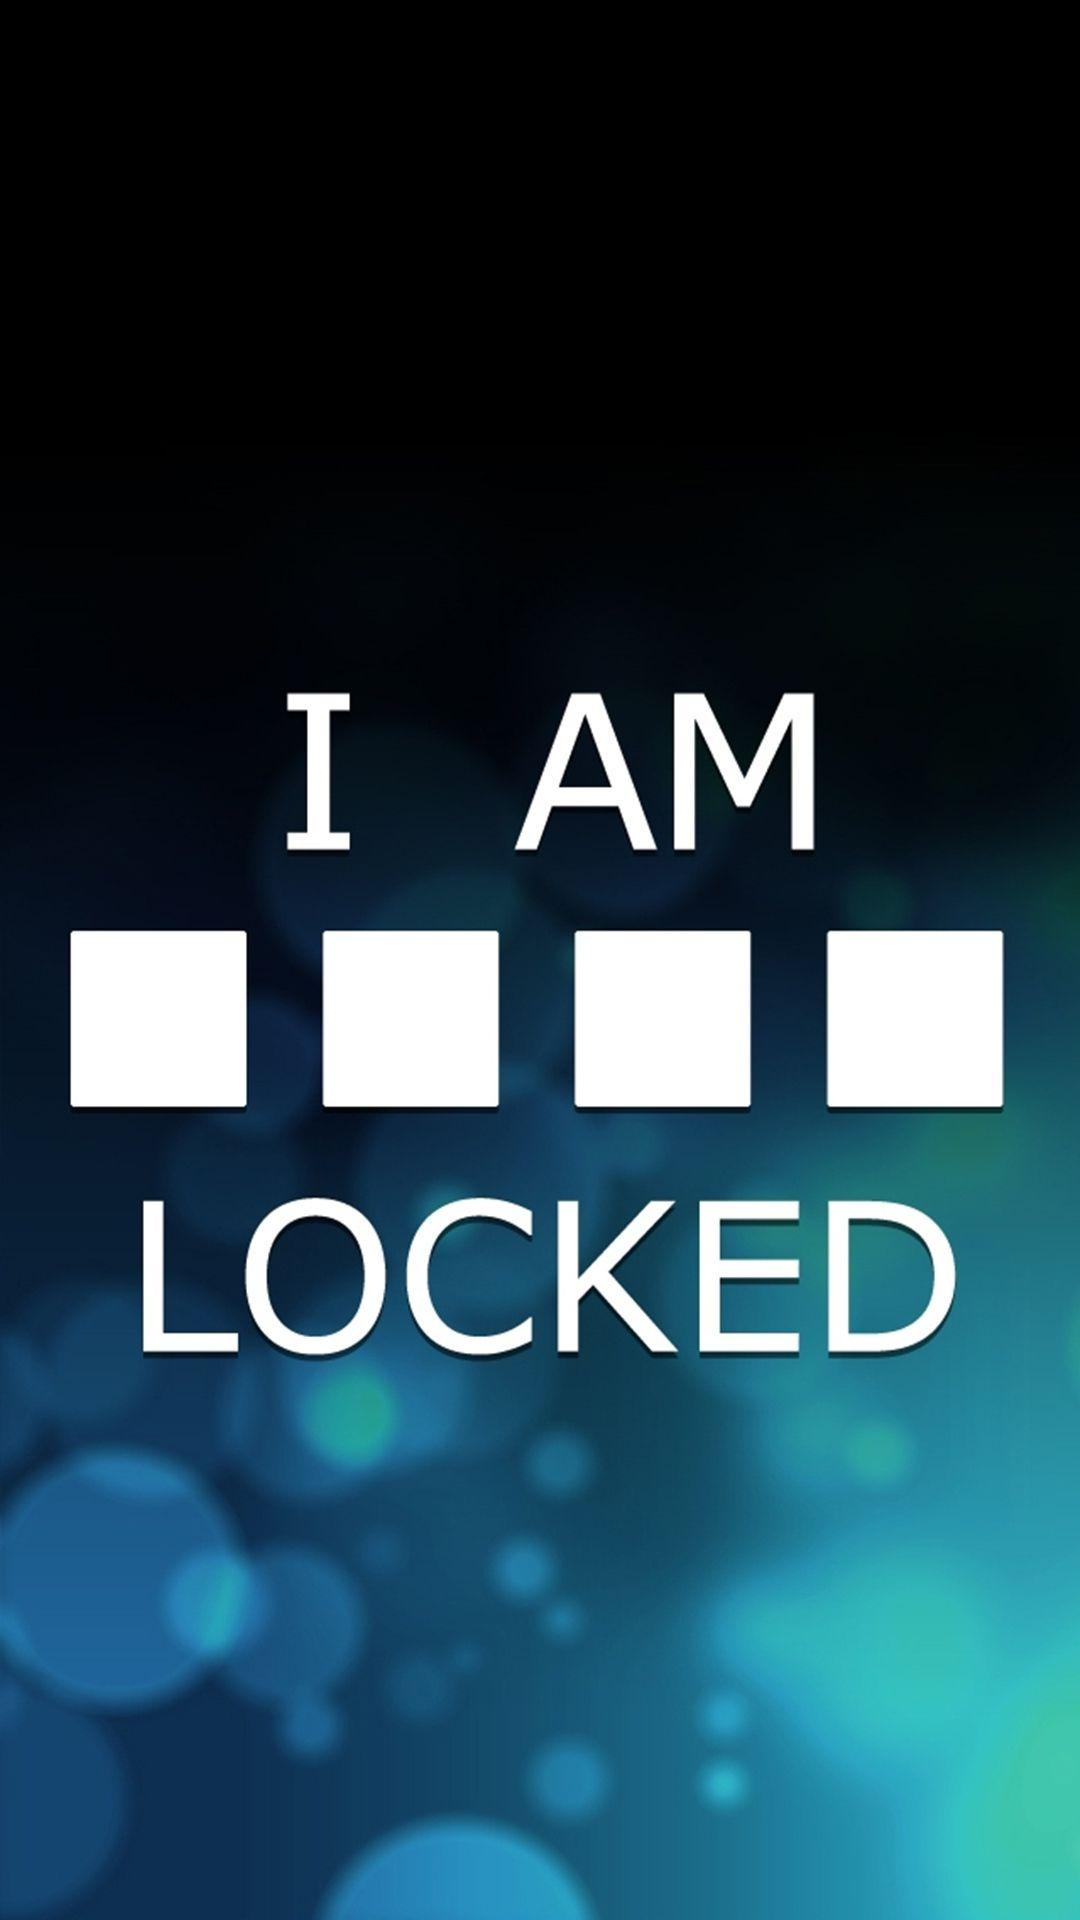 Locked Wallpapers Wallpaper Cave